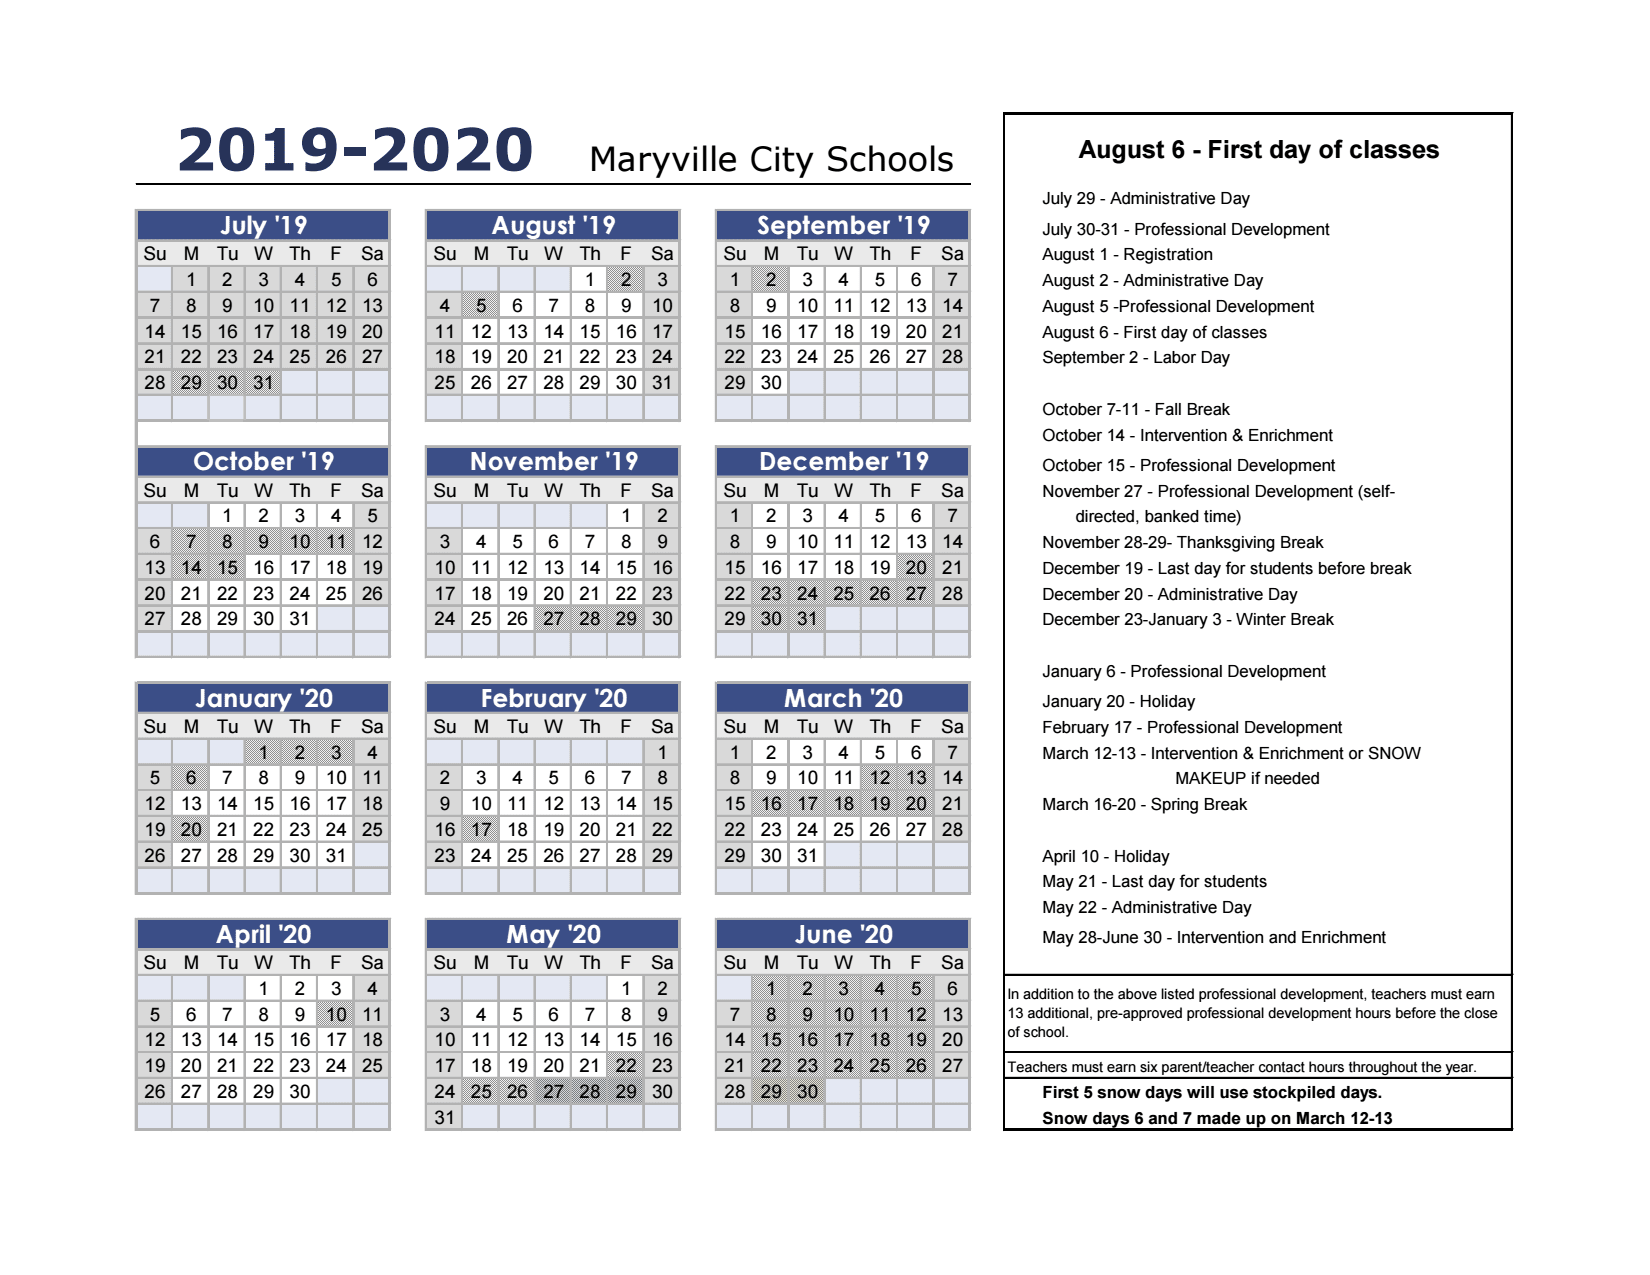 Printable Calendars 2020 May Thru December 2019 20 Calendar (print ready)   Maryville City Schools